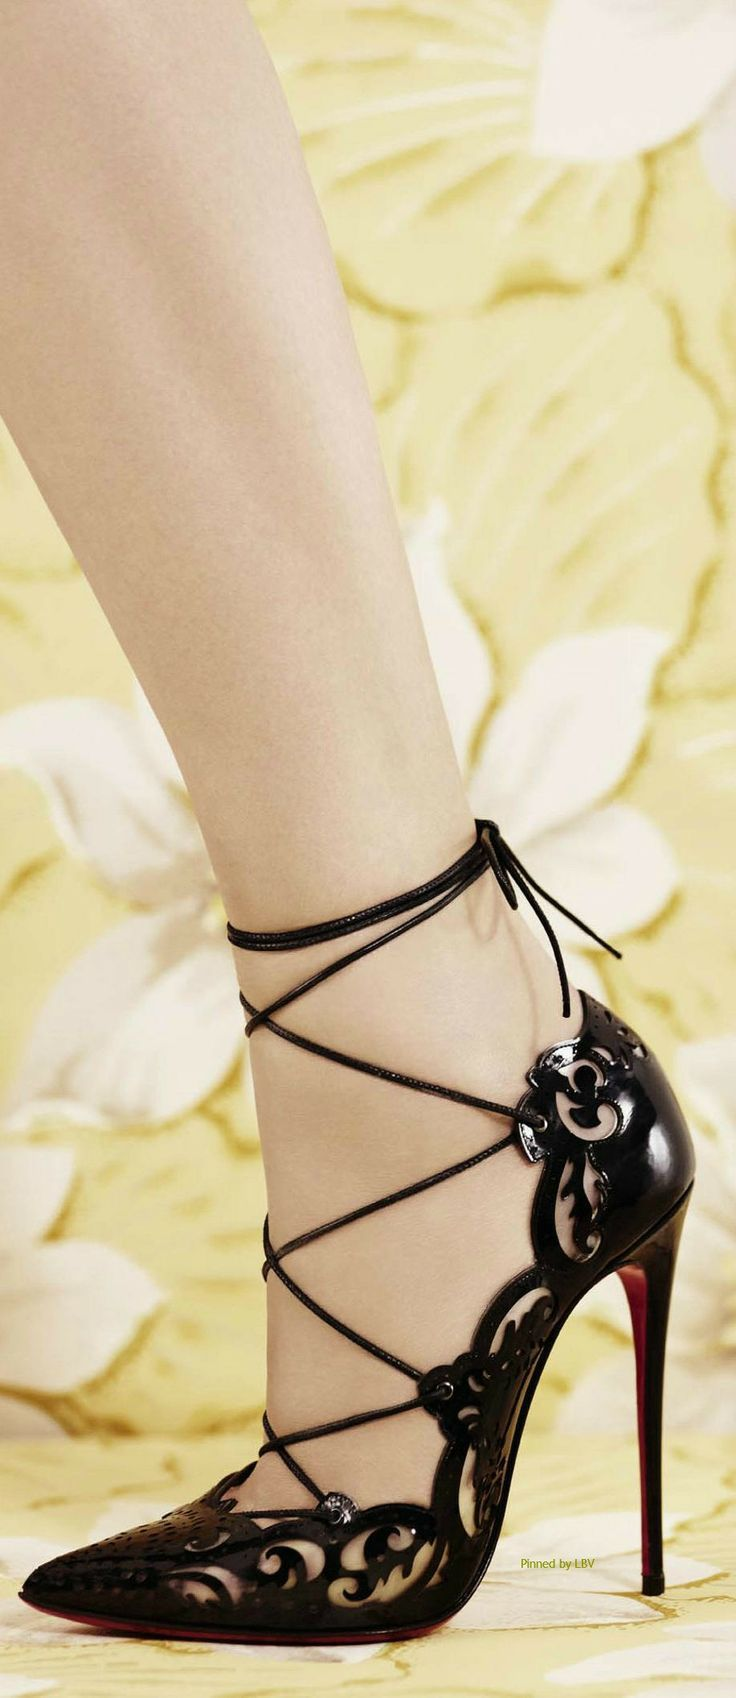 Forum on this topic: Christian Louboutin Shoes Spring 2015 Campaign, christian-louboutin-shoes-spring-2015-campaign/